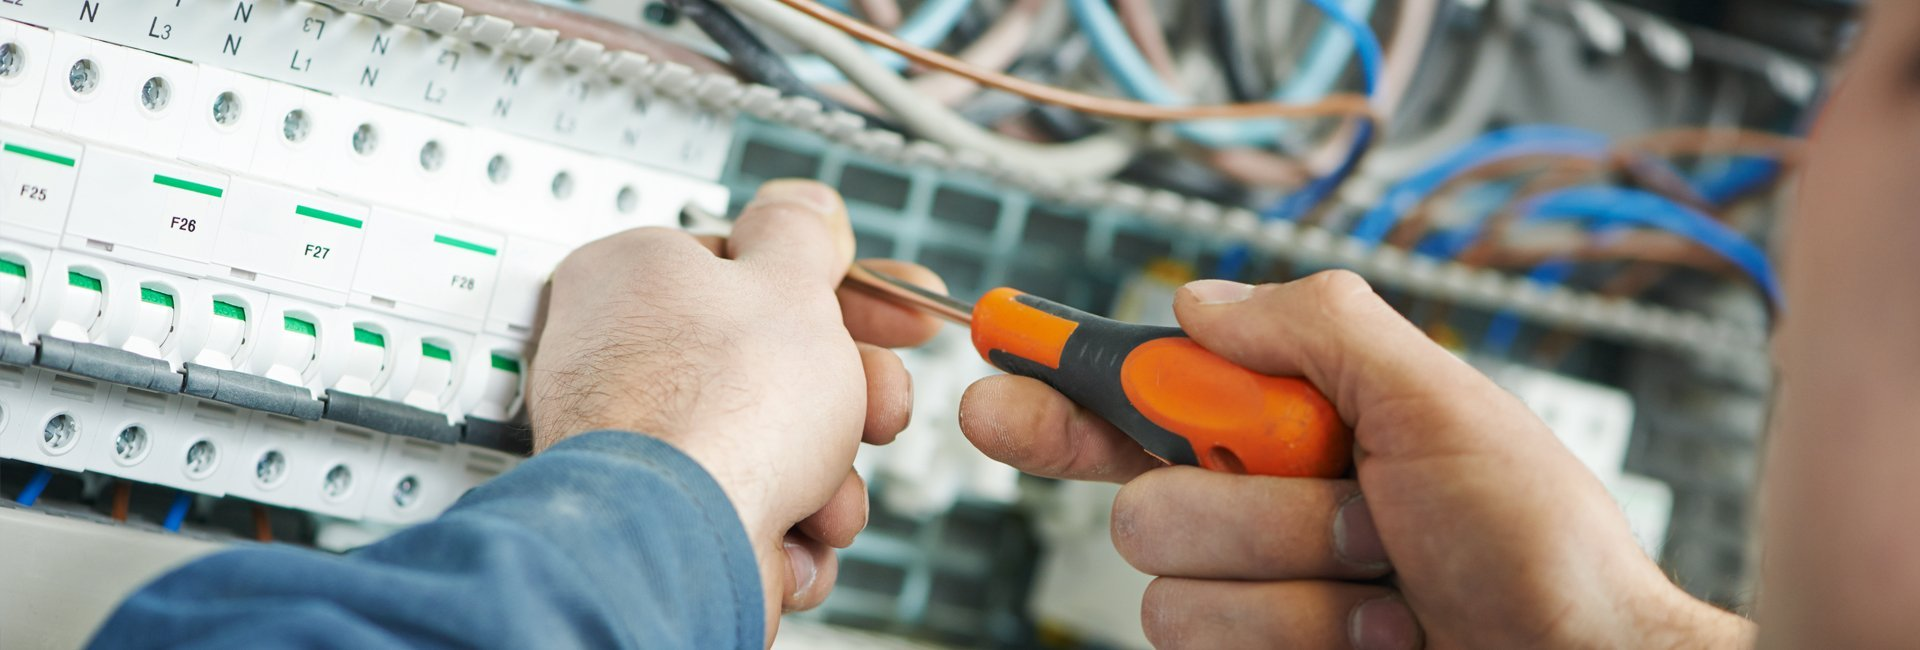 Electrical servicing